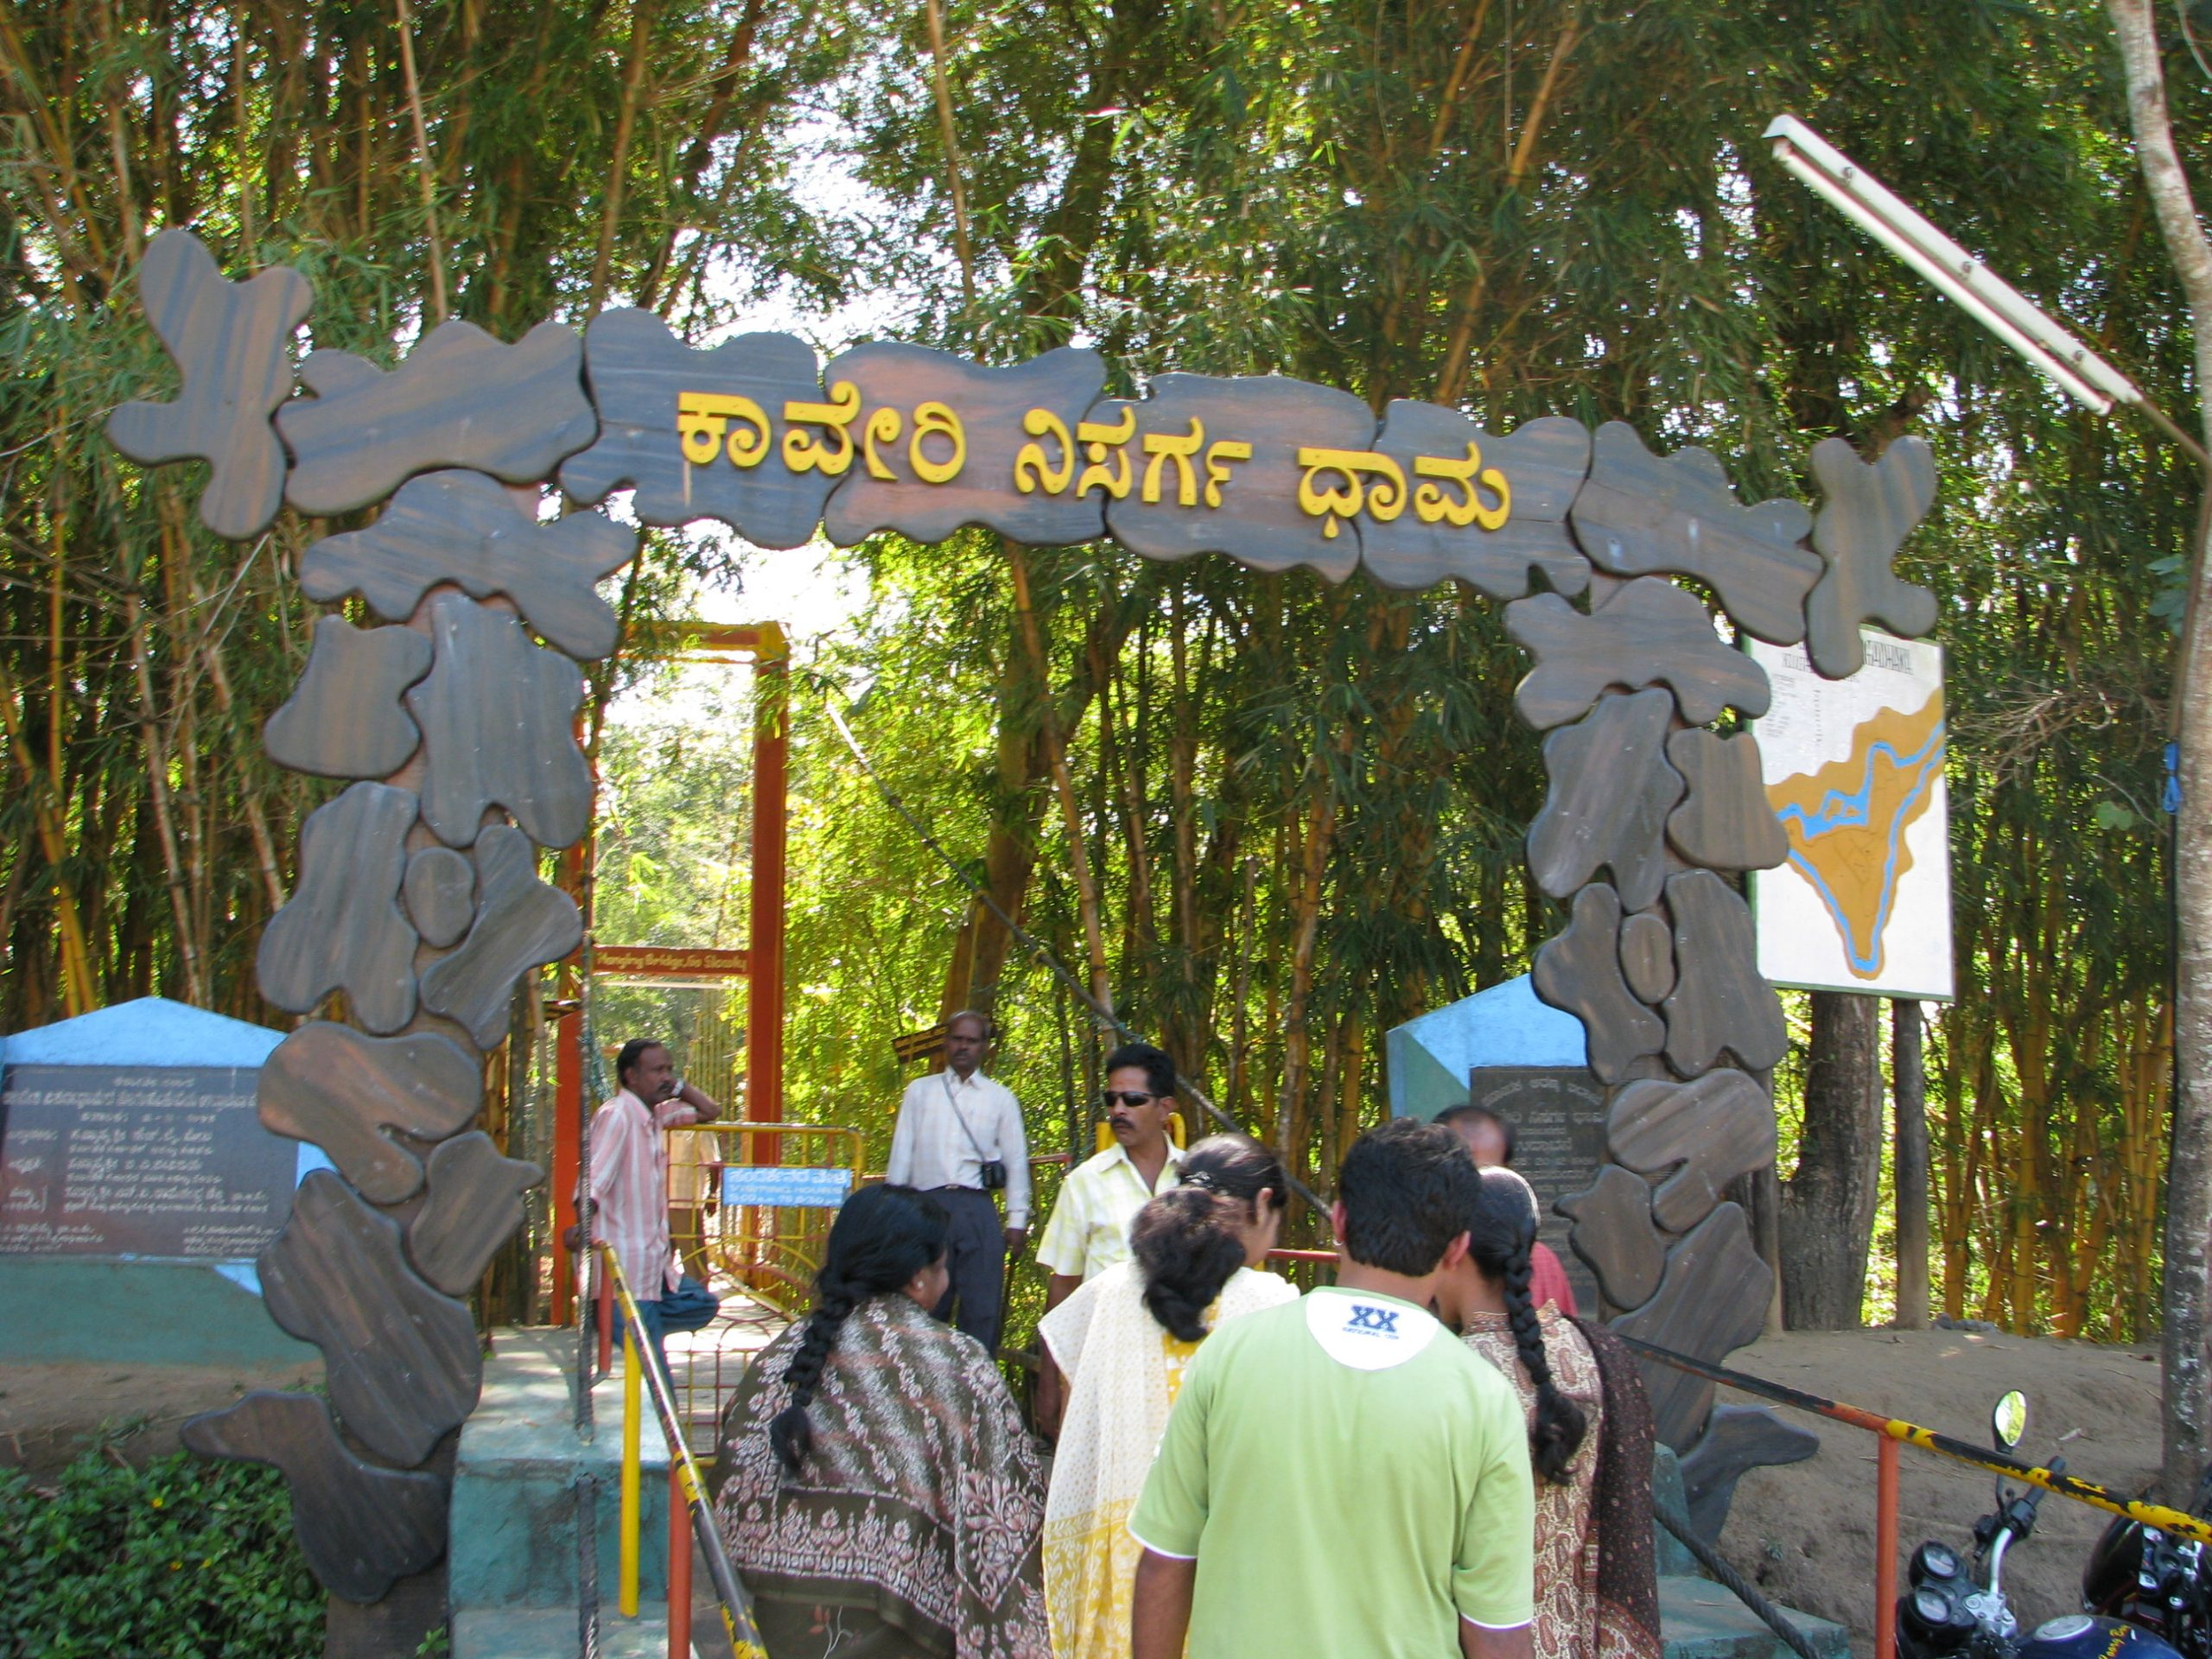 Best place to visit in Bylakuppe - Island of Nisargadhama